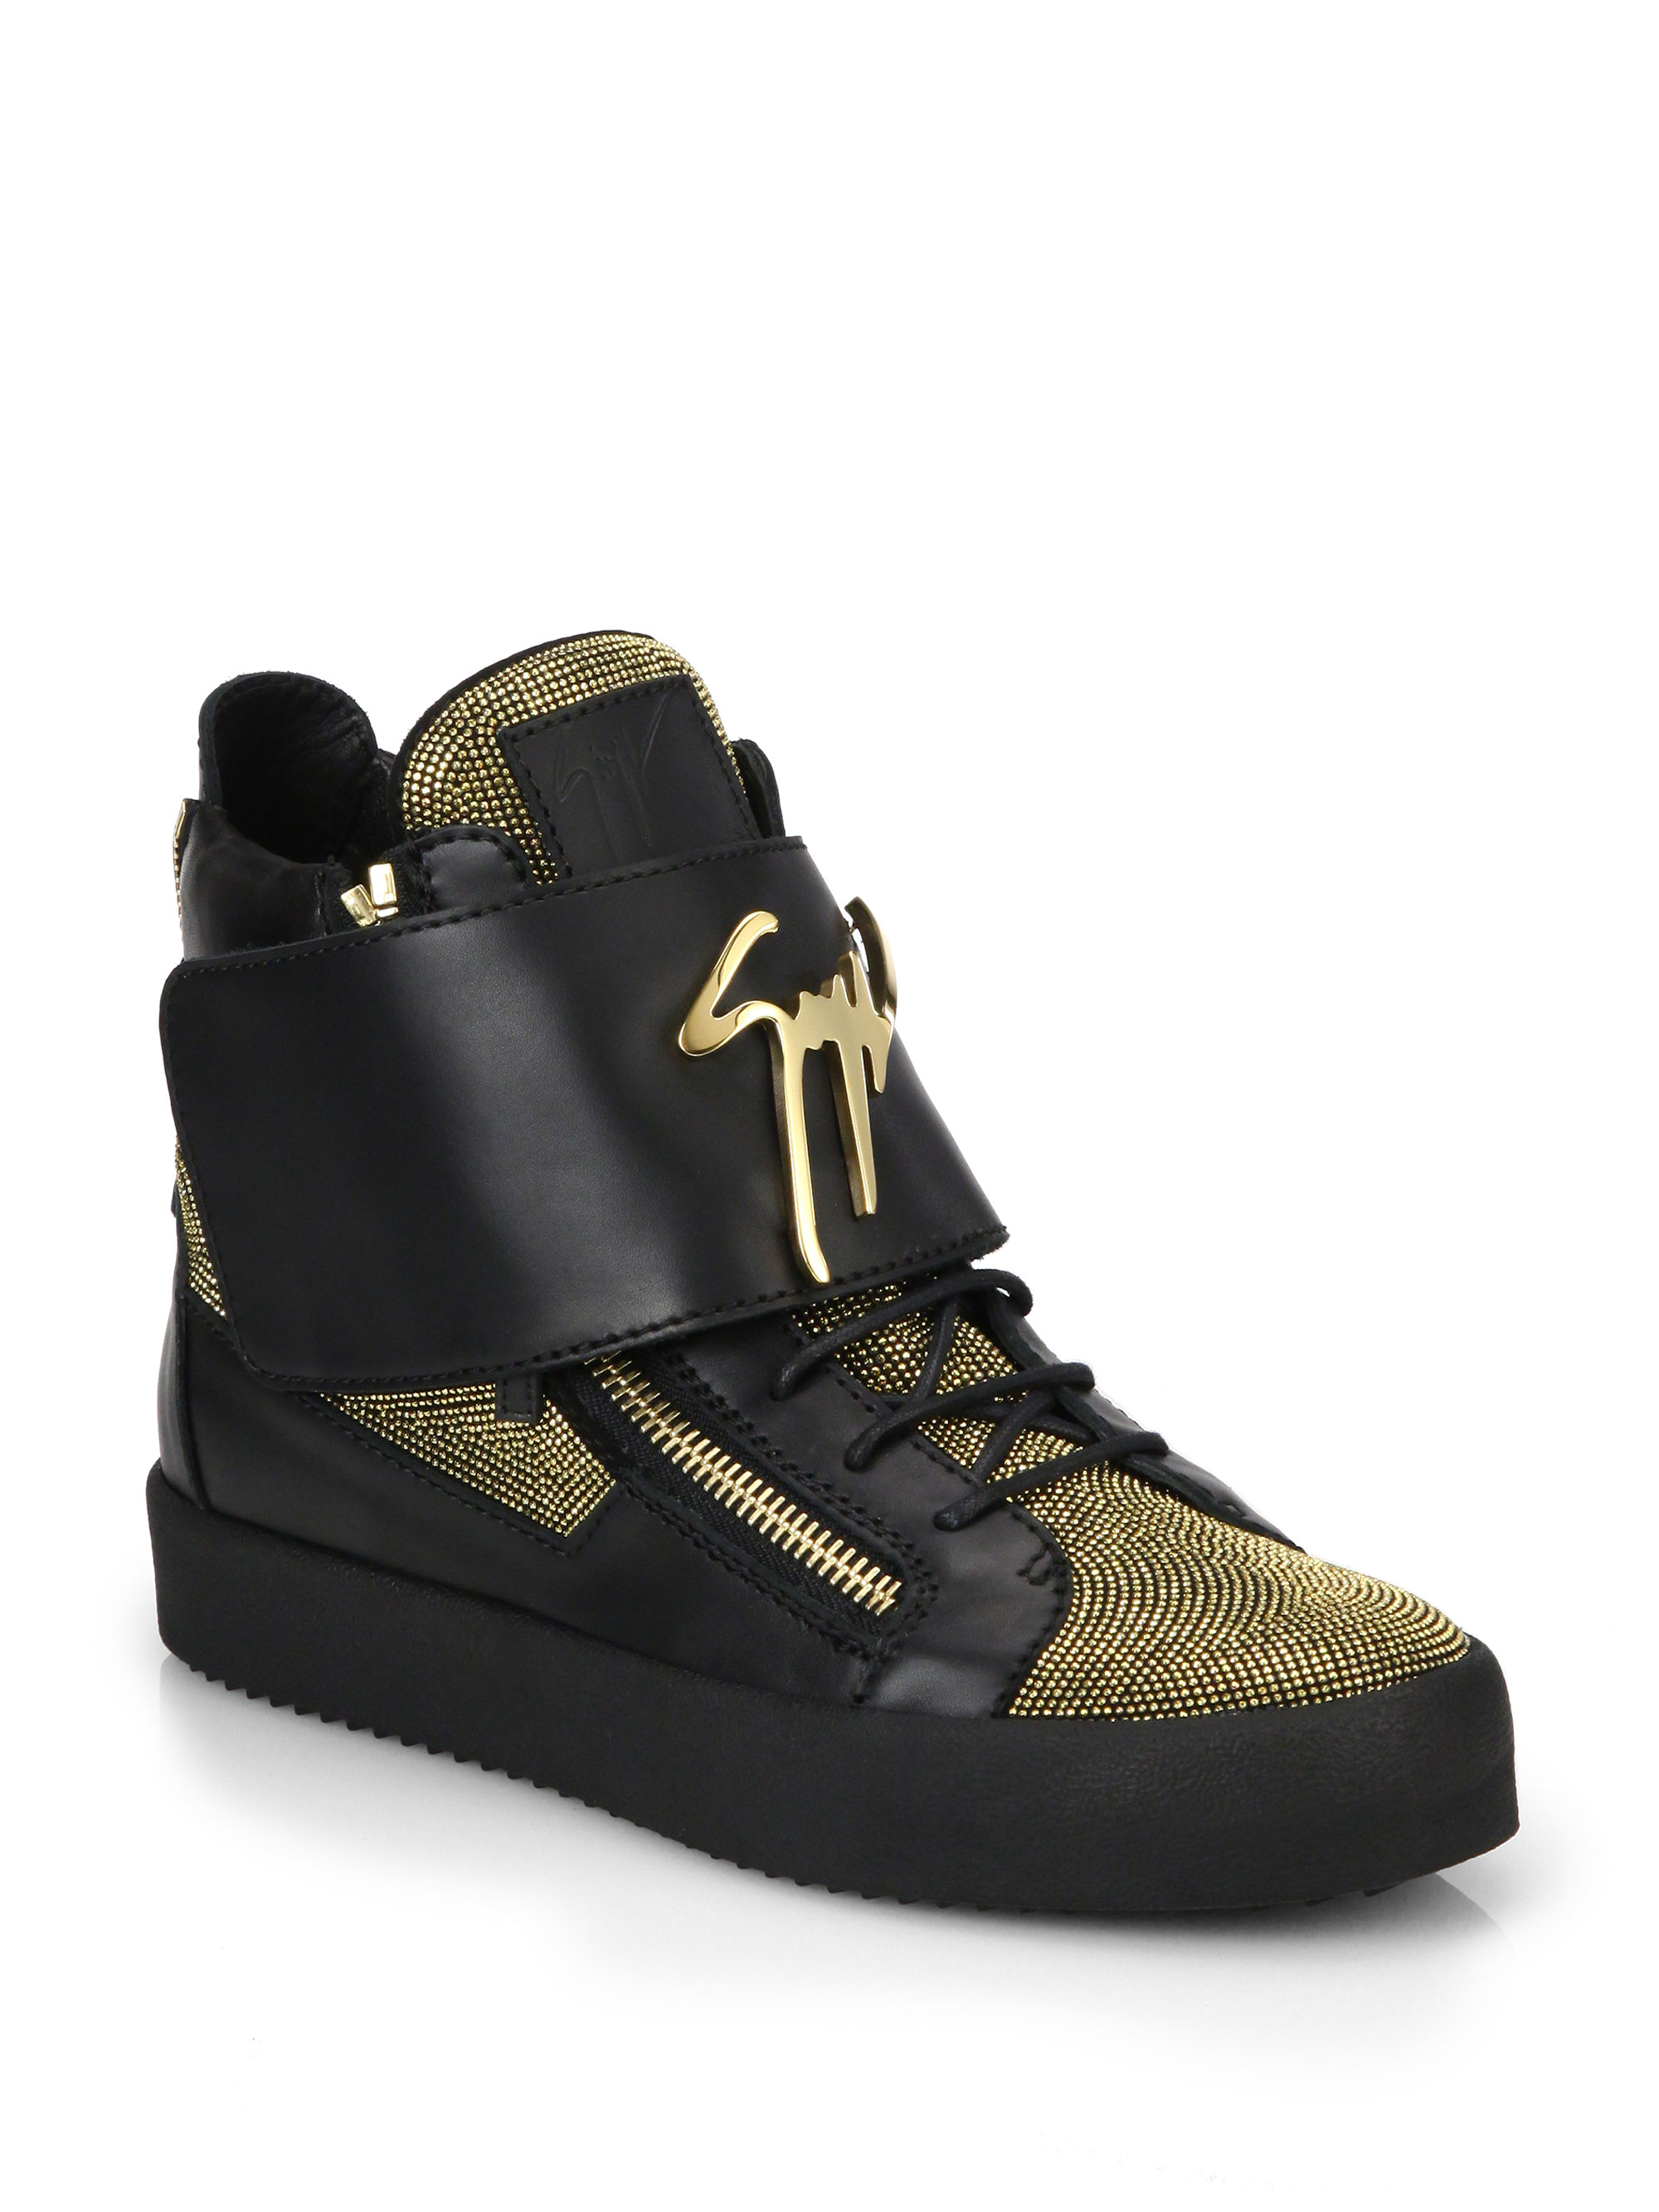 Lyst - Giuseppe Zanotti Leather Metallic Nailheads High ...